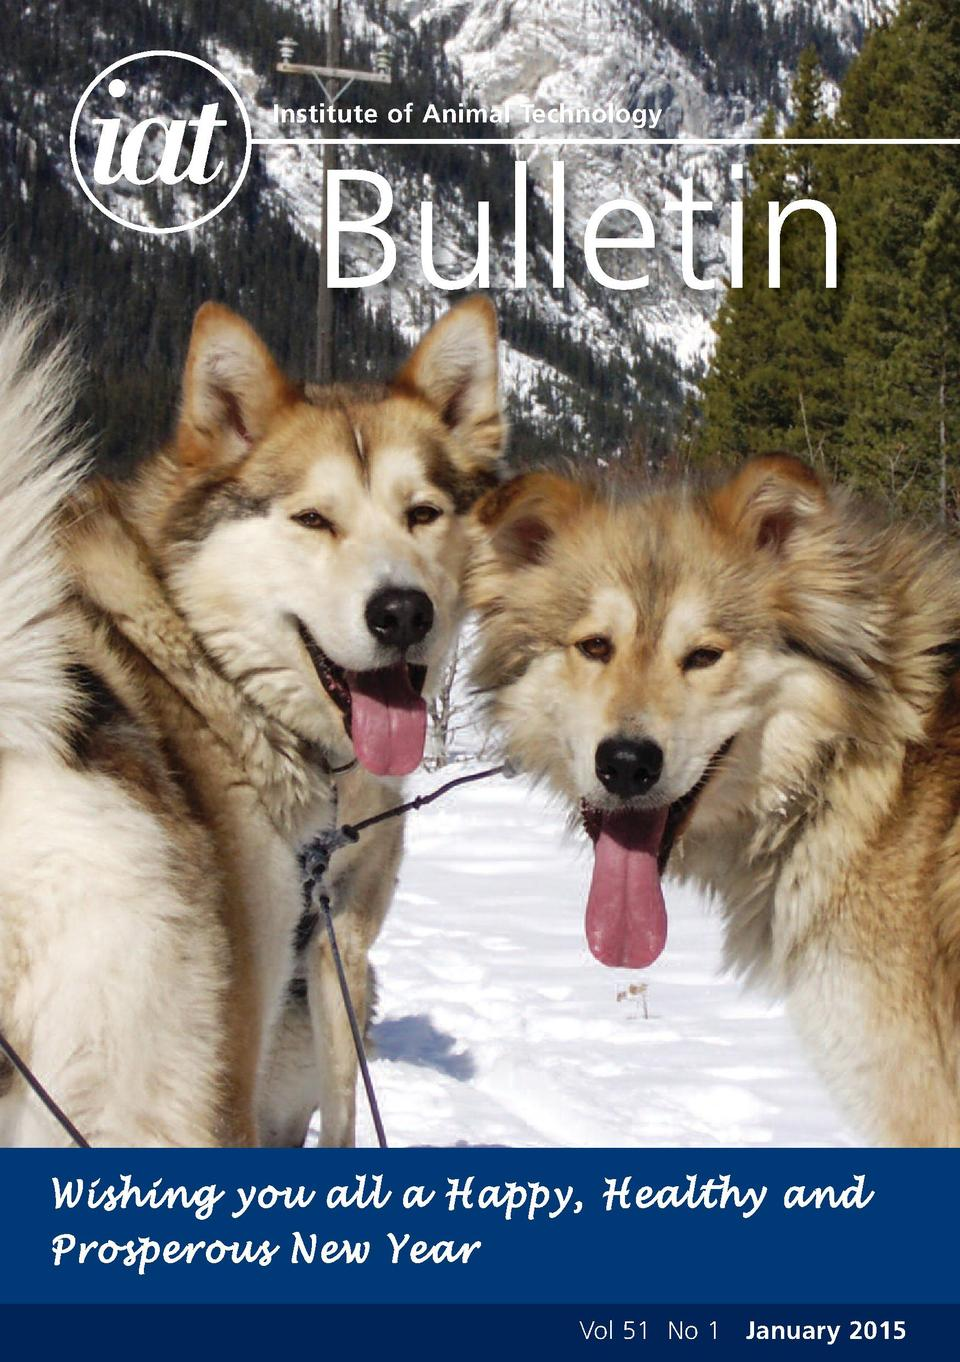 Institute of Animal Technology  Bulletin  Wi shin g yo u al l a H app y, H eal thy a nd Prosperous New Year Vol 51 No 1 Ja...